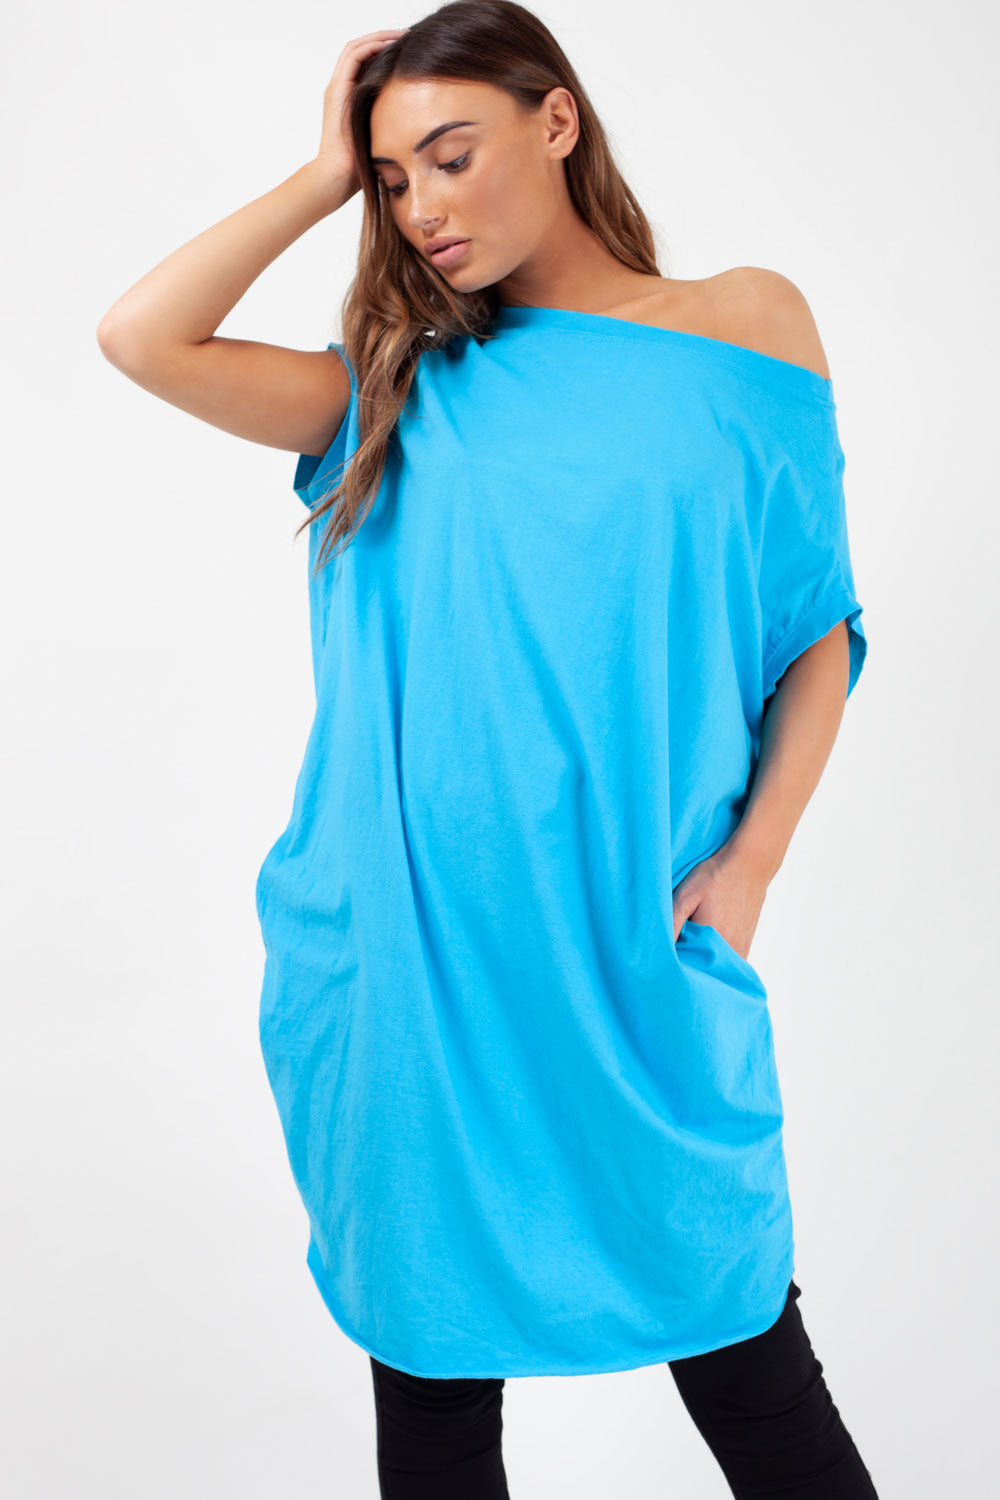 oversized t shirt sky blue